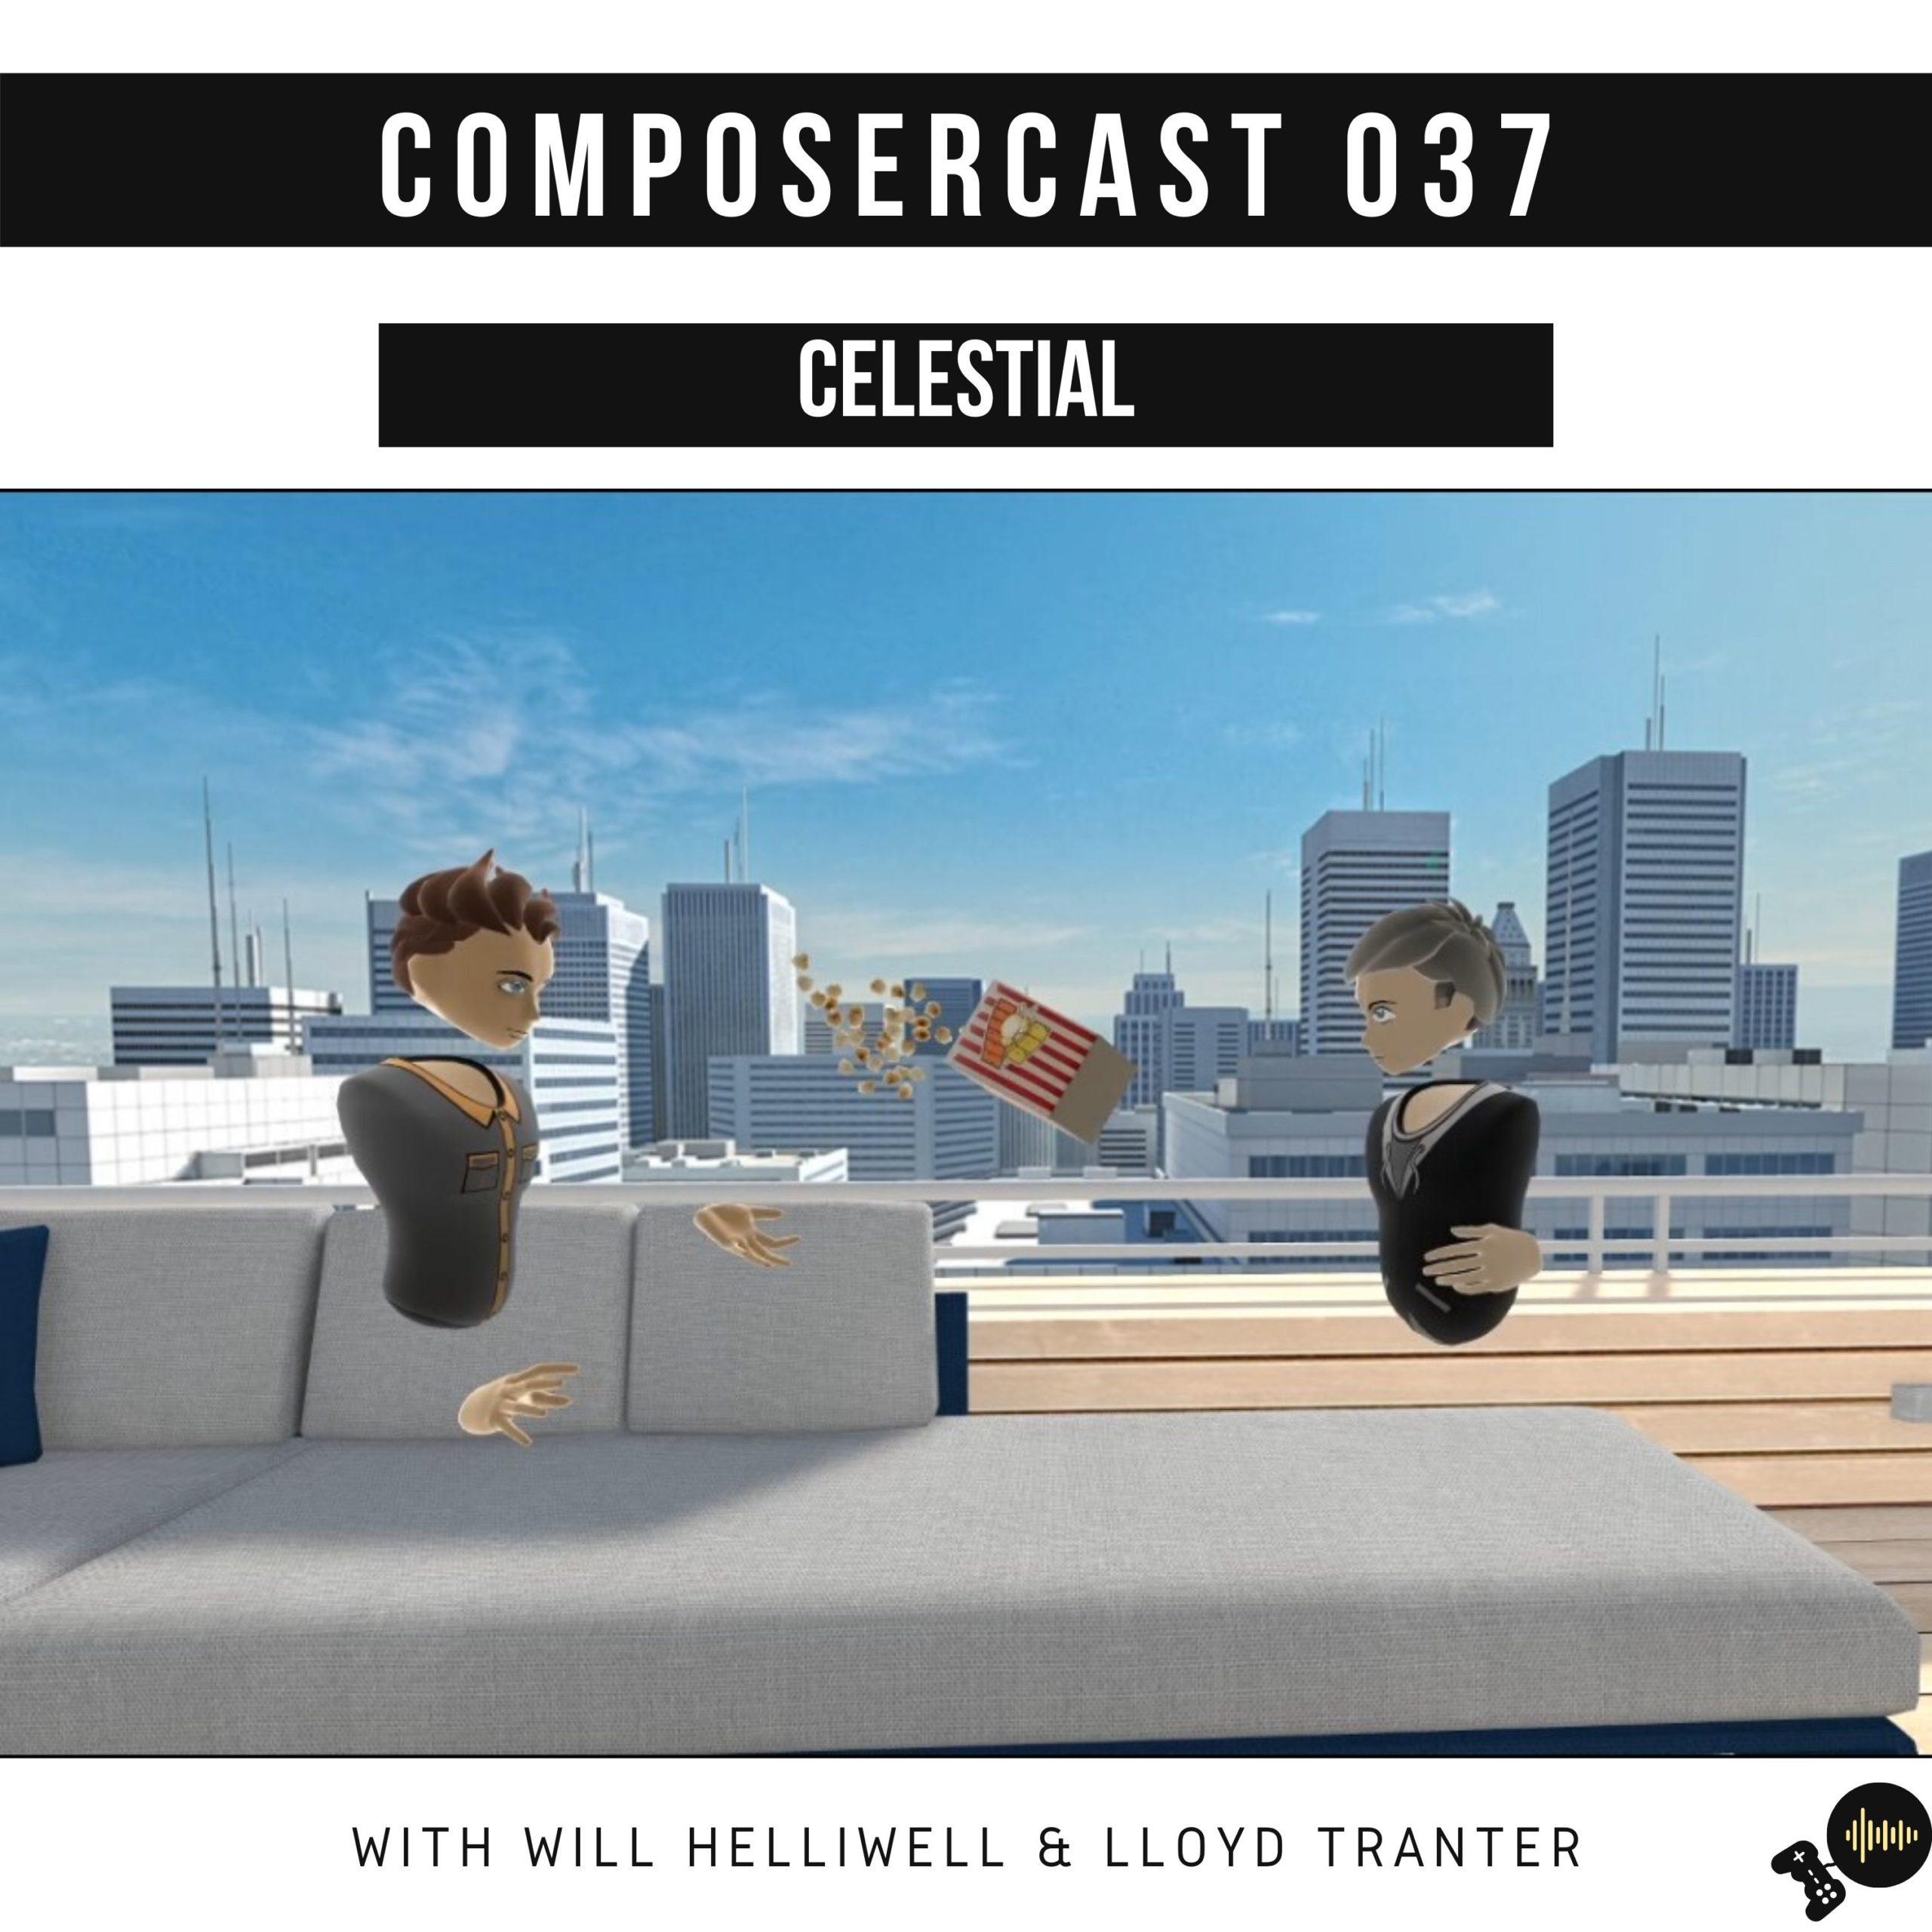 ComposerCast 037 Podcast Artwork